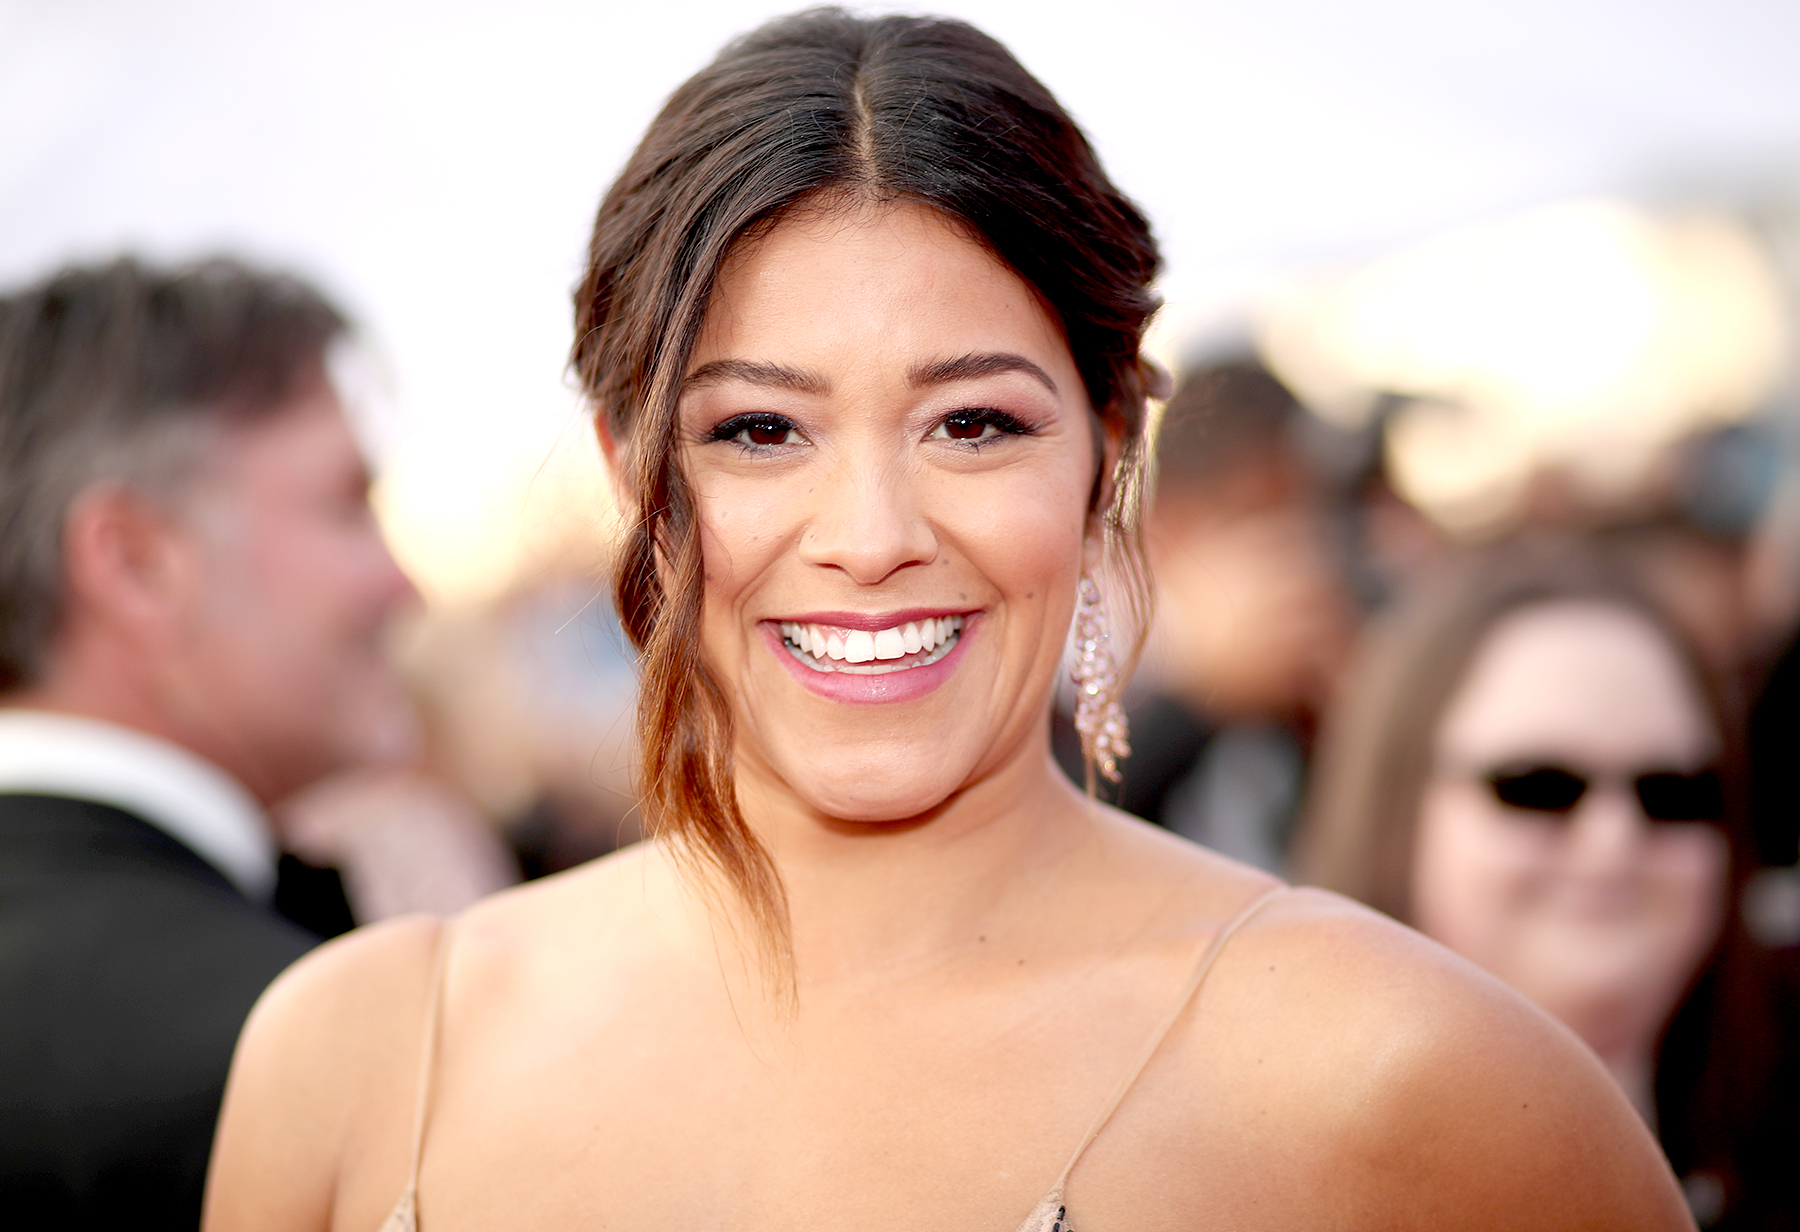 Gina Rodriguez attends The 23rd Annual Screen Actors Guild Awards at The Shrine Auditorium on January 29, 2017 in Los Angeles, California.